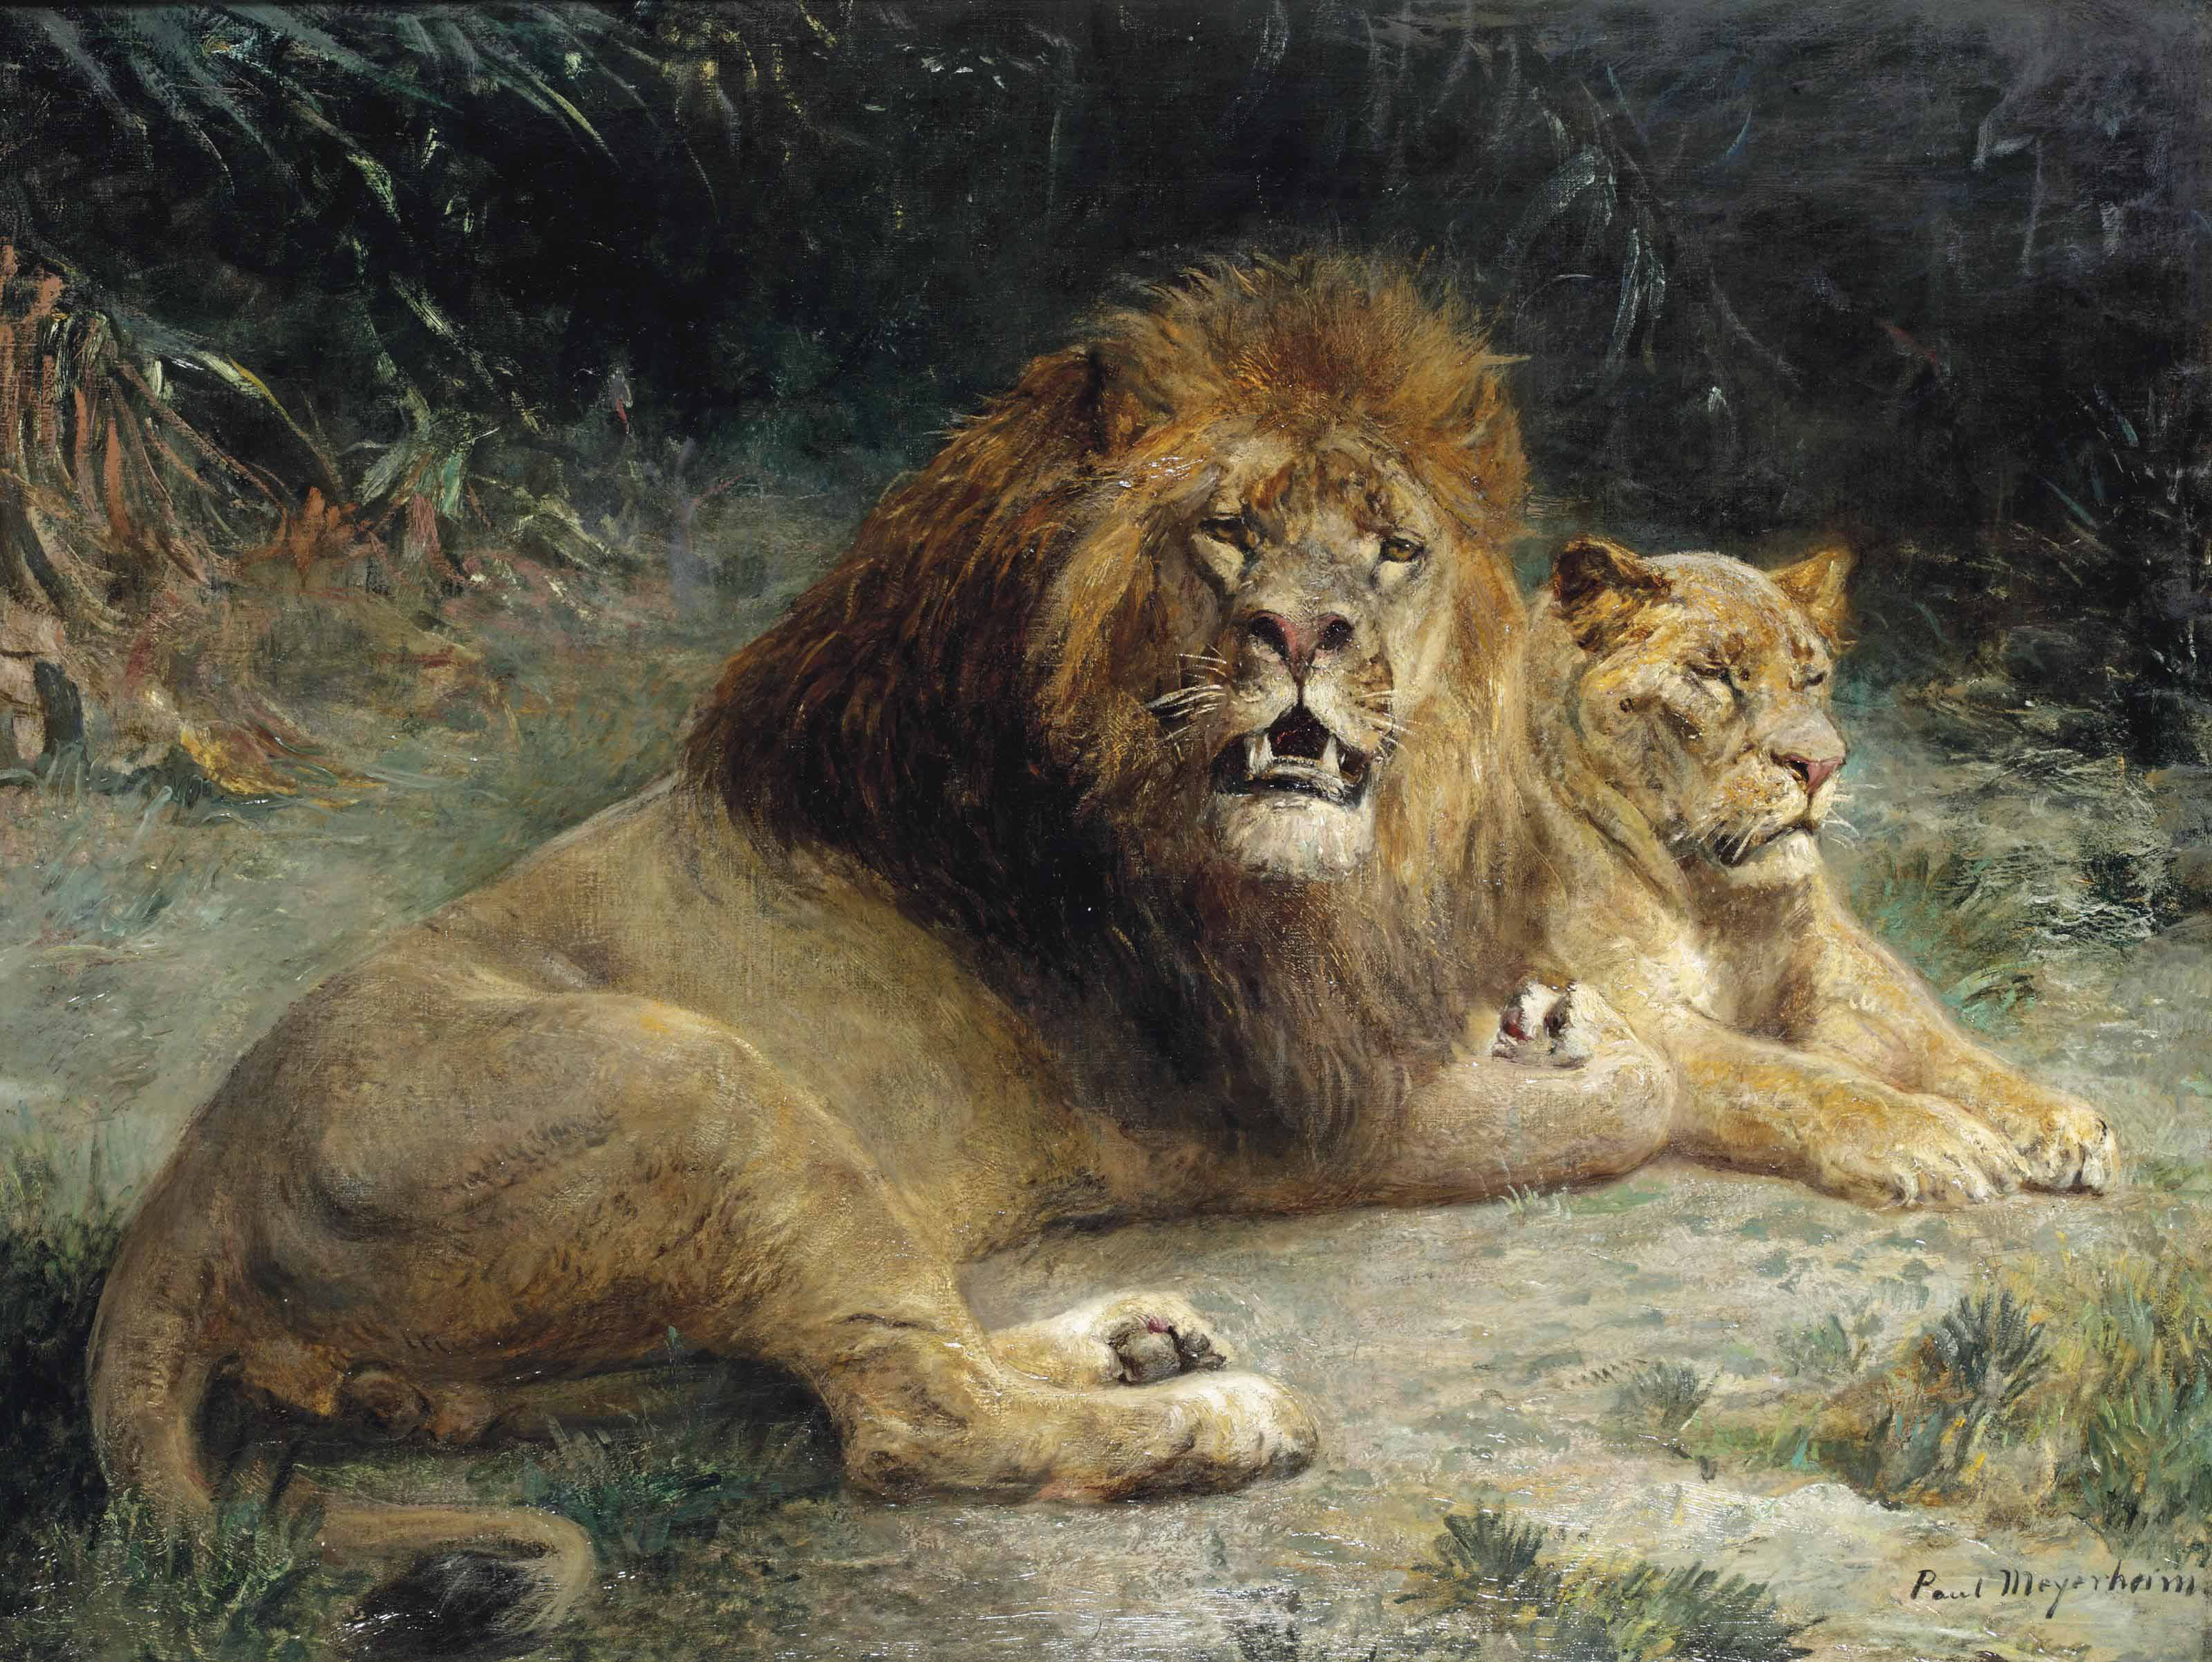 A lion and a lioness basking in the sun